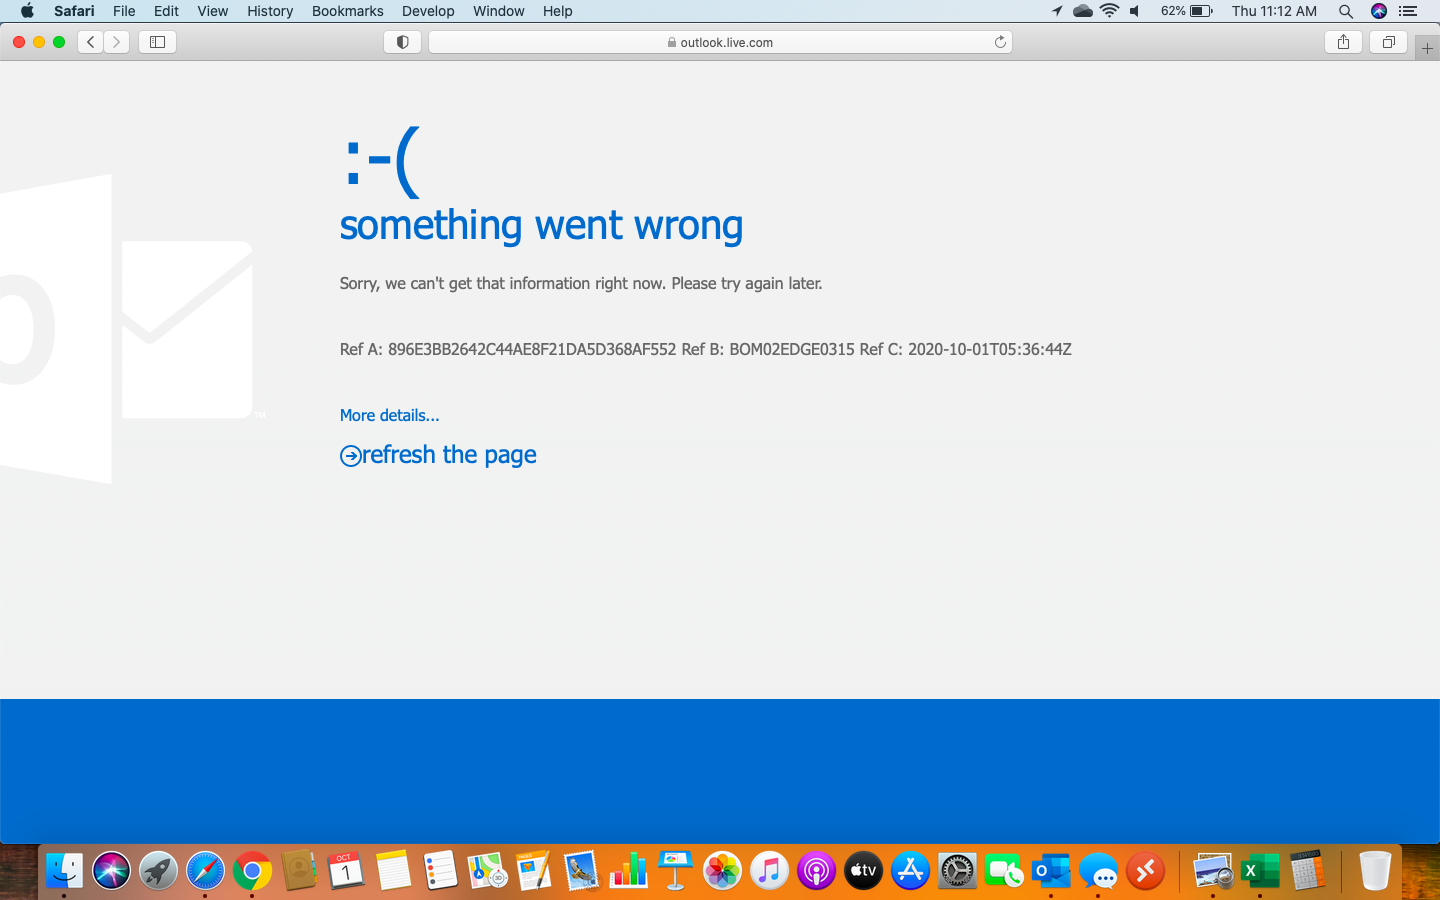 Outlook down? Users report problems with Microsoft's email service, again